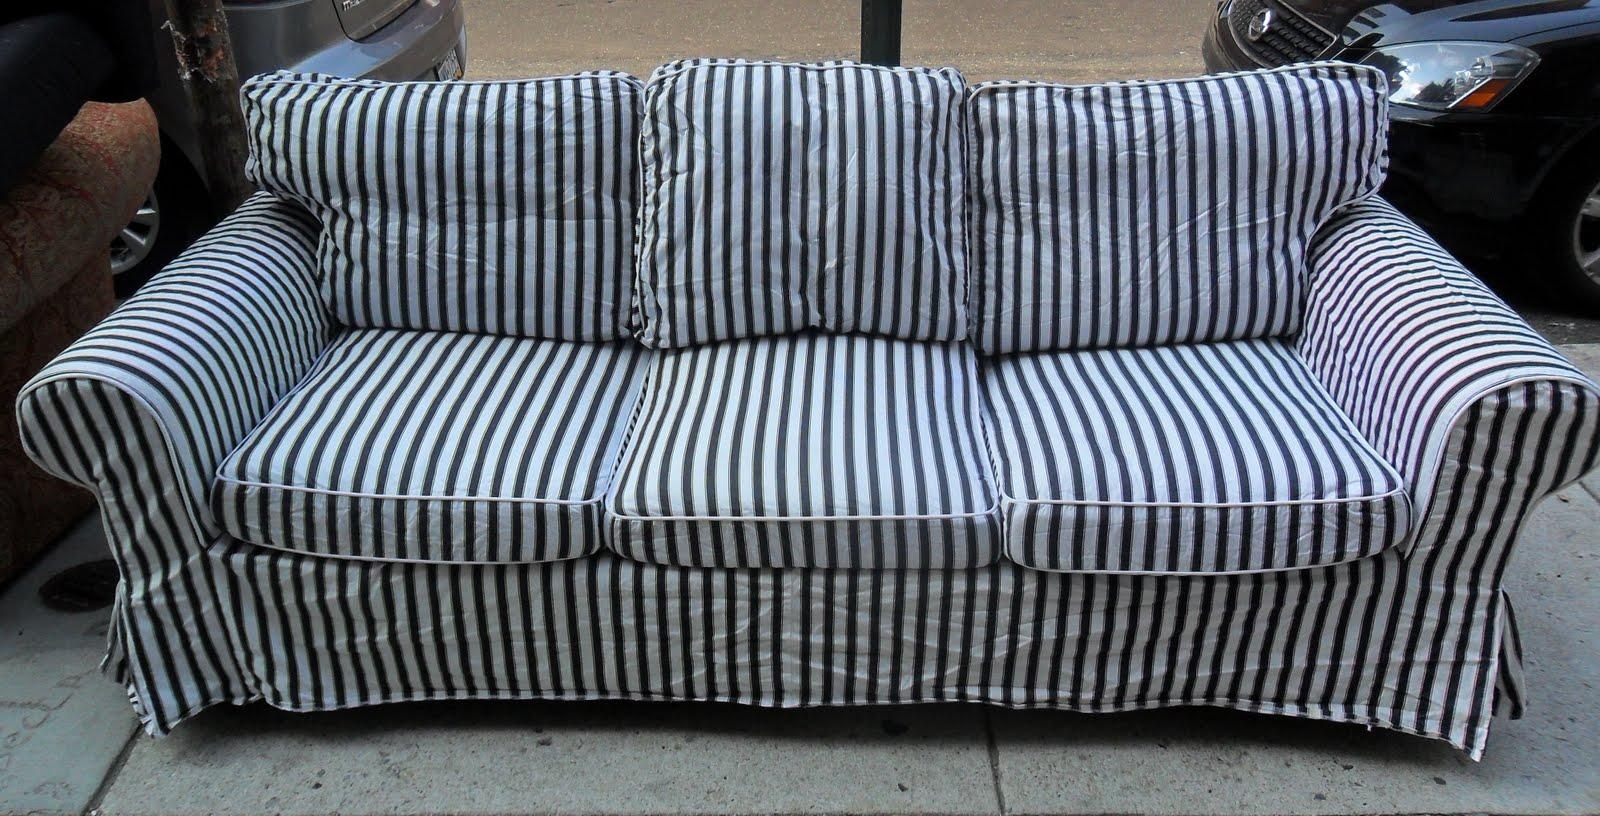 Blue Striped Sofa – Gallery Image Seniorhomes With Regard To Blue And White Striped Sofas (View 3 of 20)